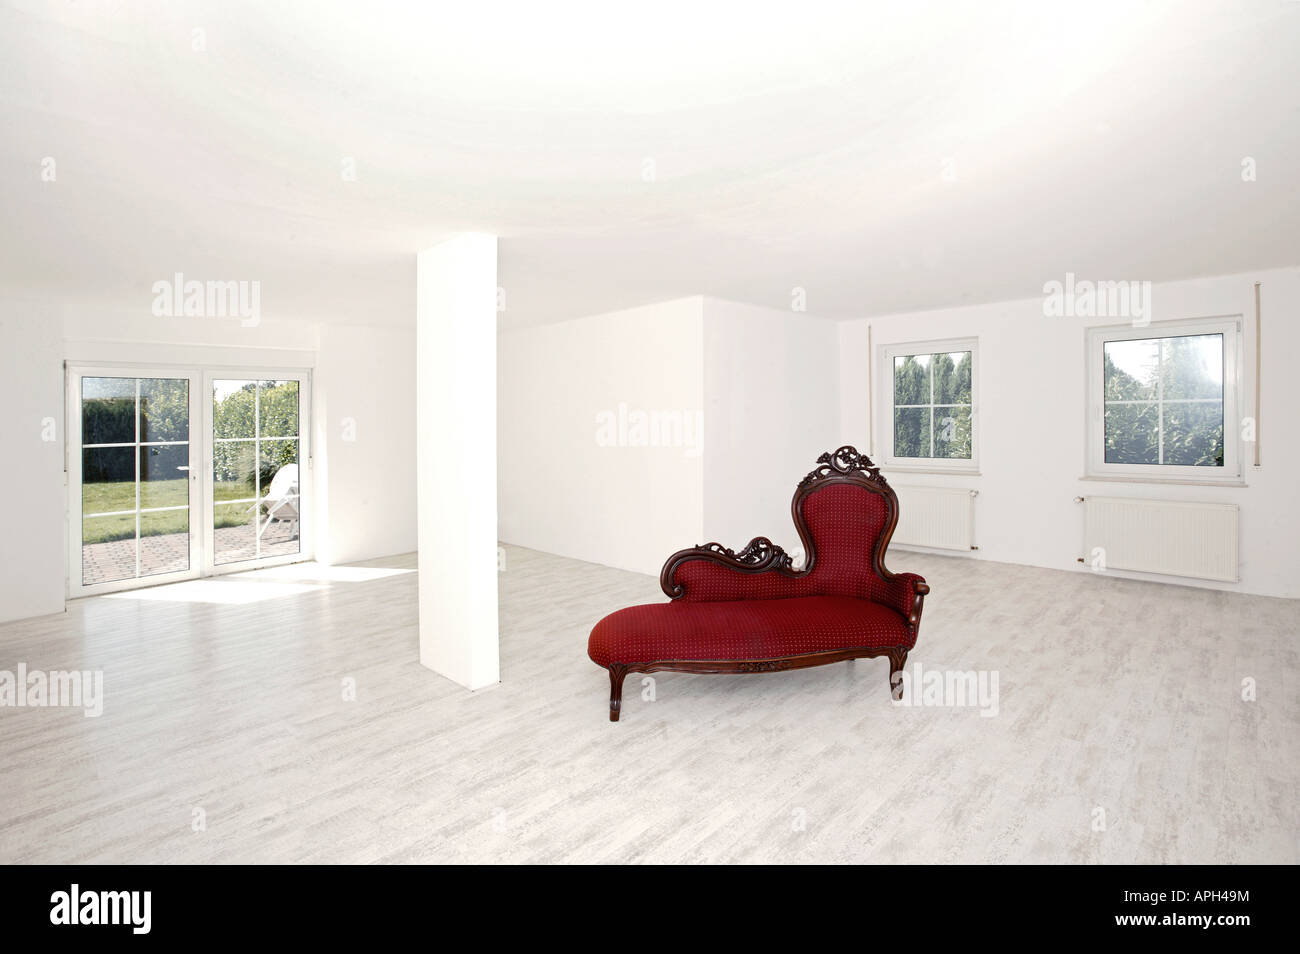 Living Room With Bench Living Room Empty White Column Window Antique Old Red Bank Bench